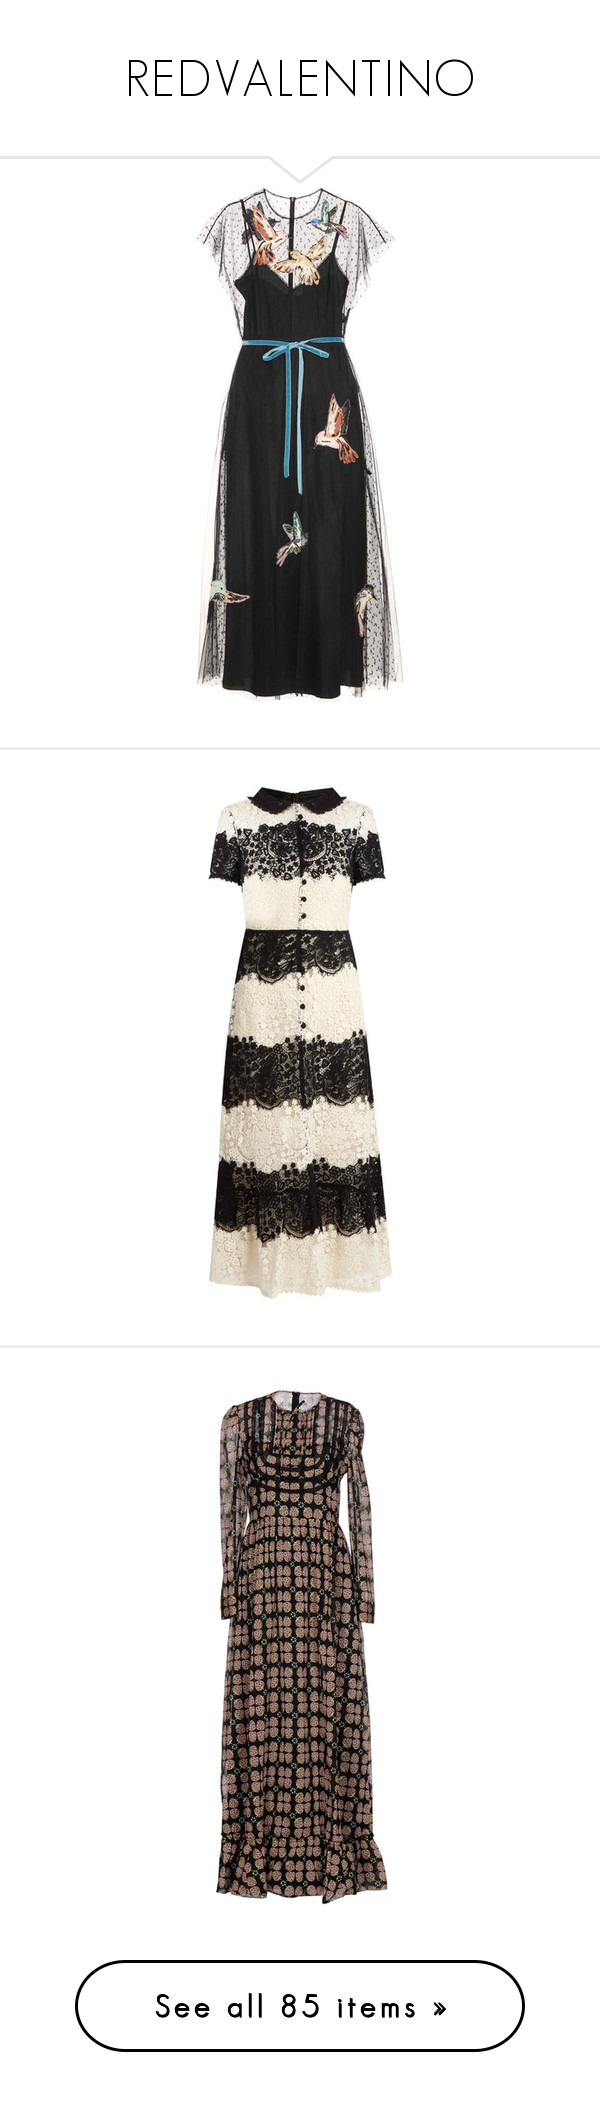 b3c5b16a7c Valentino Lace Dress Black And White - Data Dynamic AG